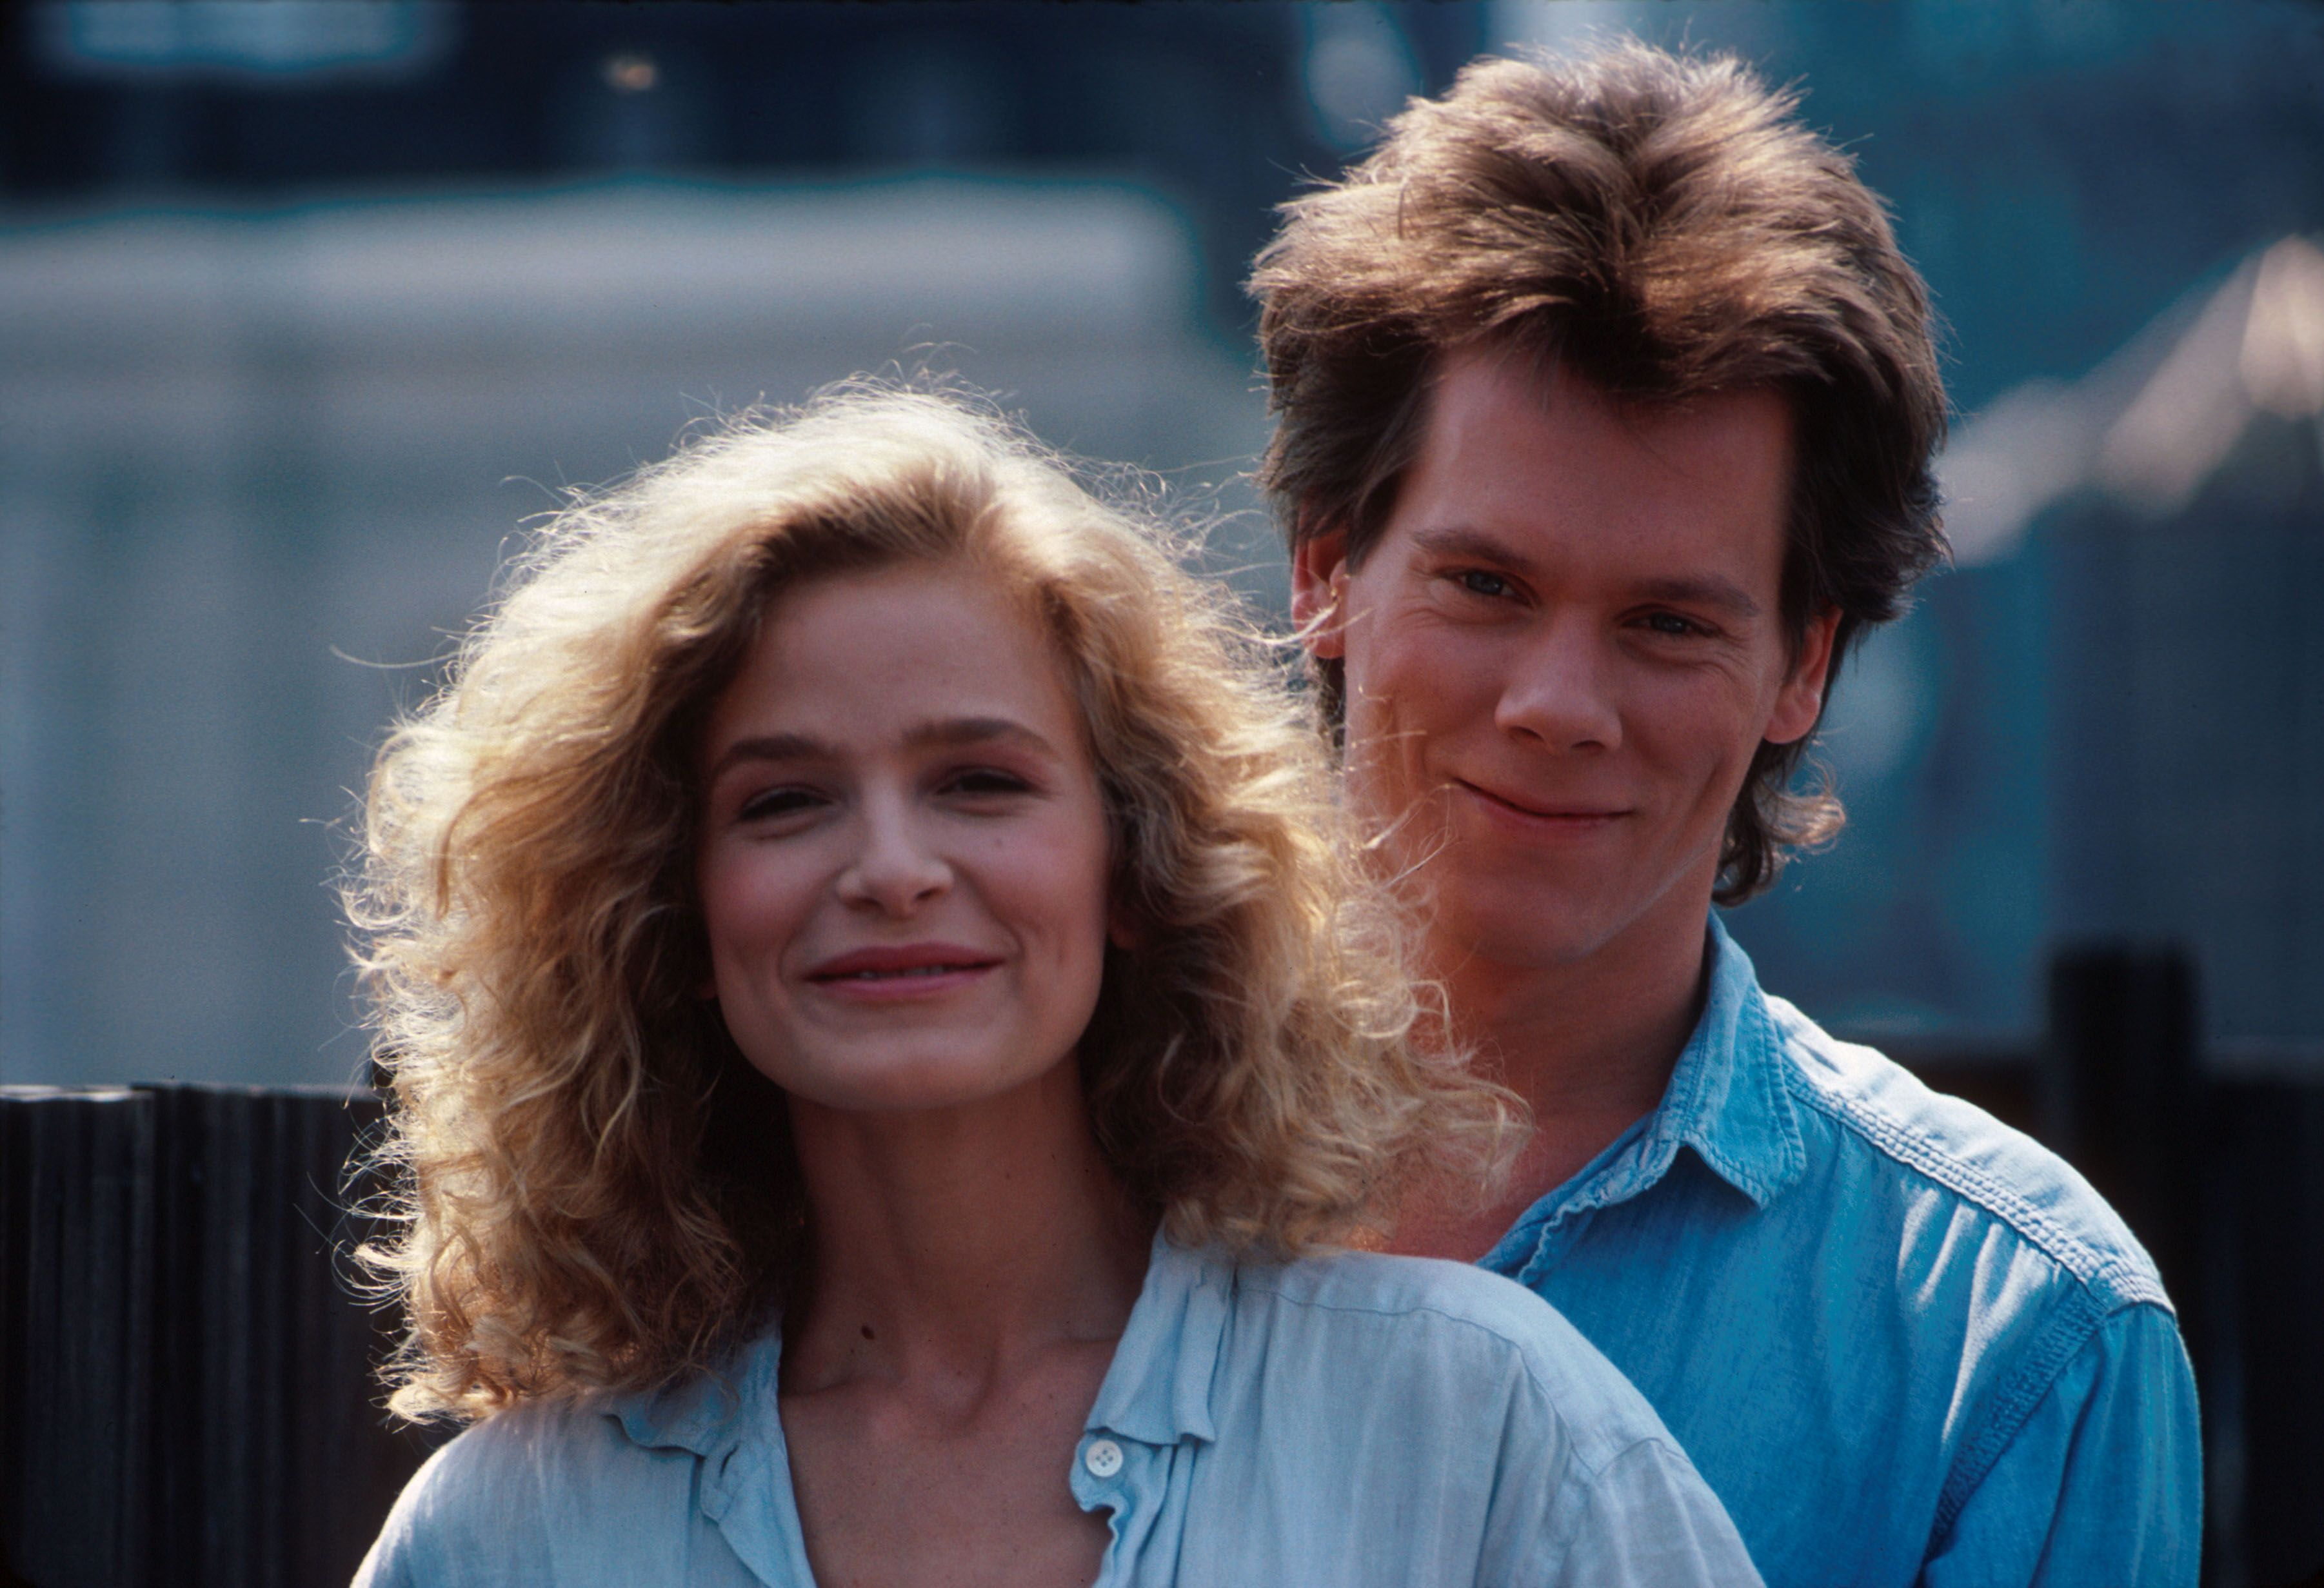 Kevin Bacon with Kyra Sedgwick on photo shoot in New York, August 1988. | Source: Getty Images